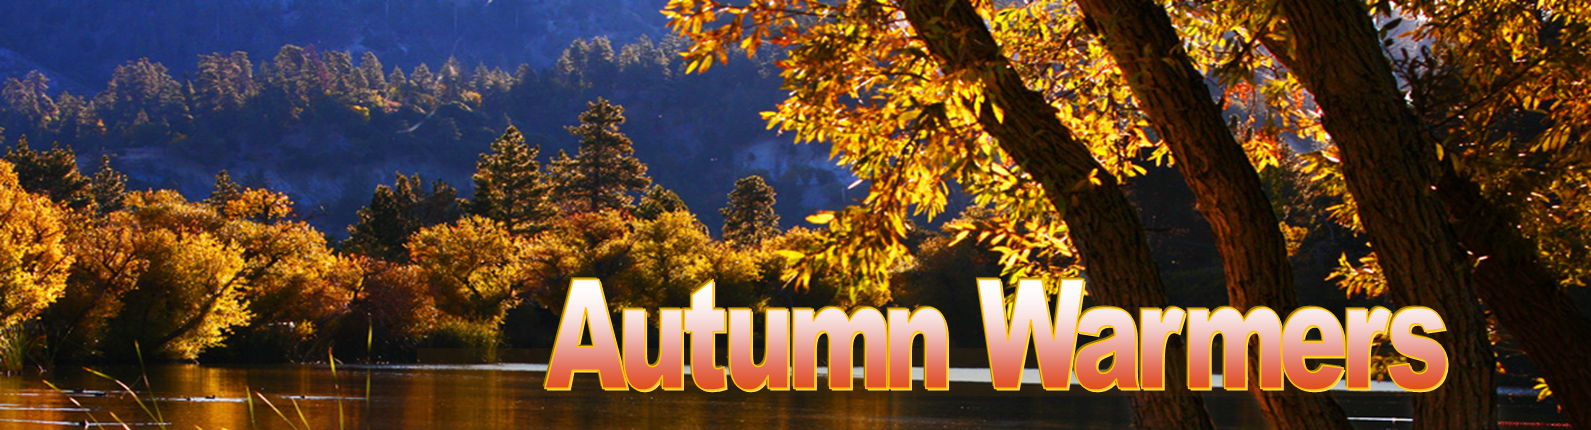 Autumn_Warmers